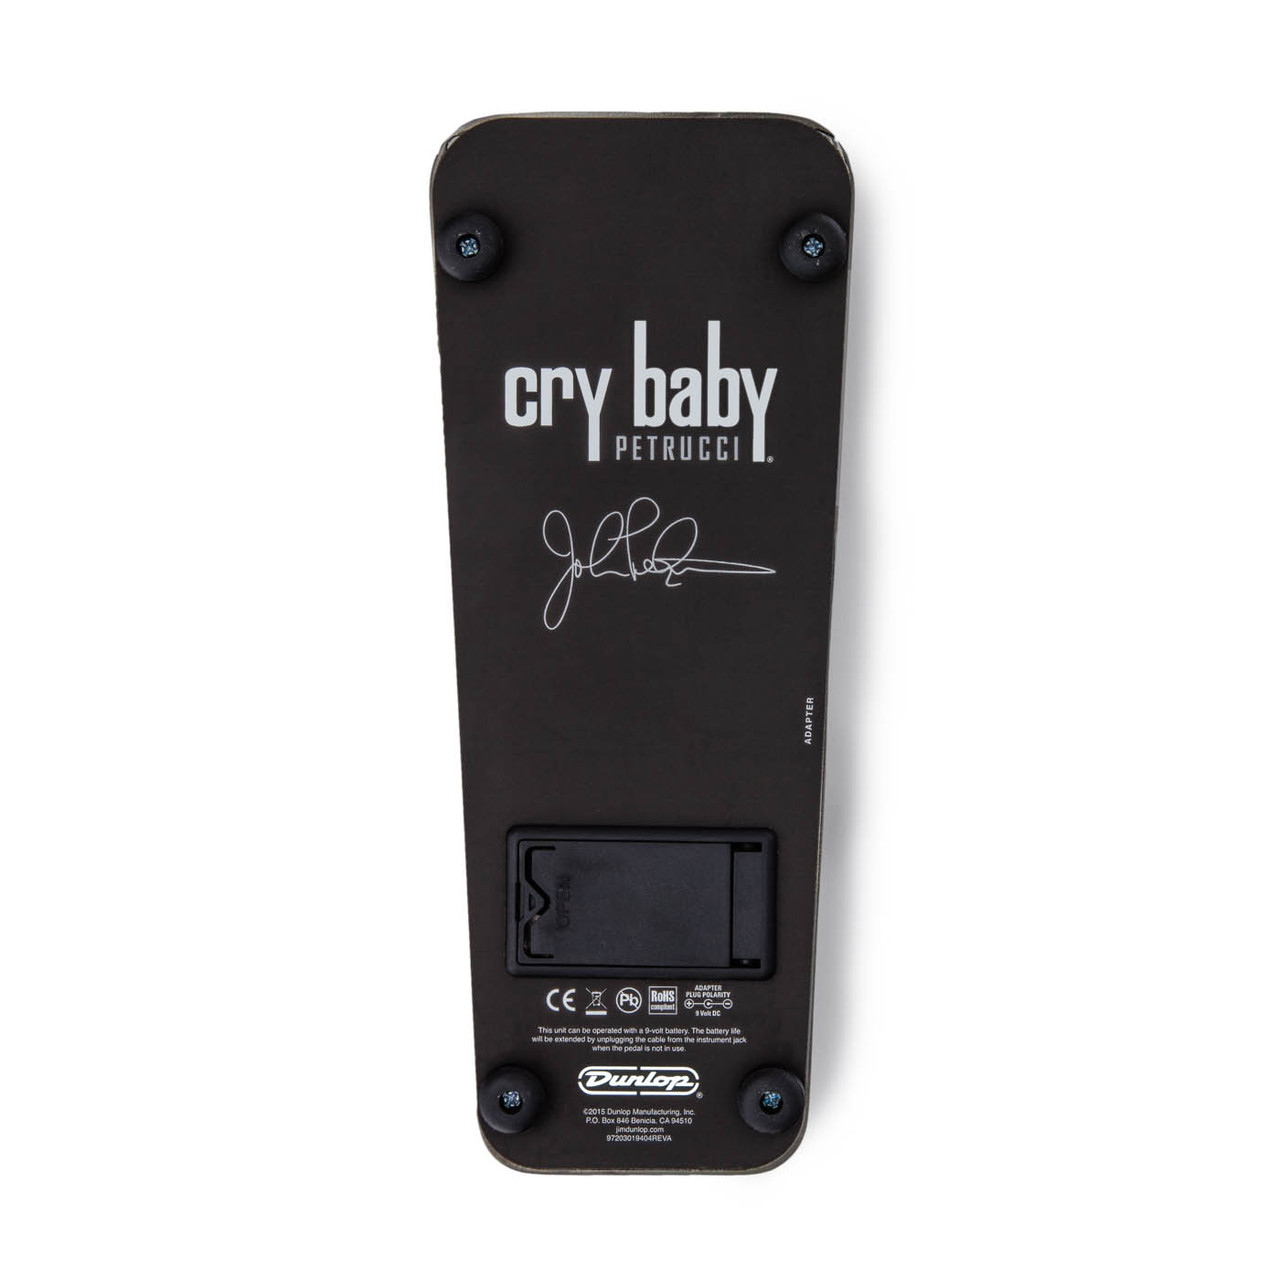 Dunlop JP95 John Petrucci Signature Cry Baby Wah Pedal CryBaby Rack in a Box